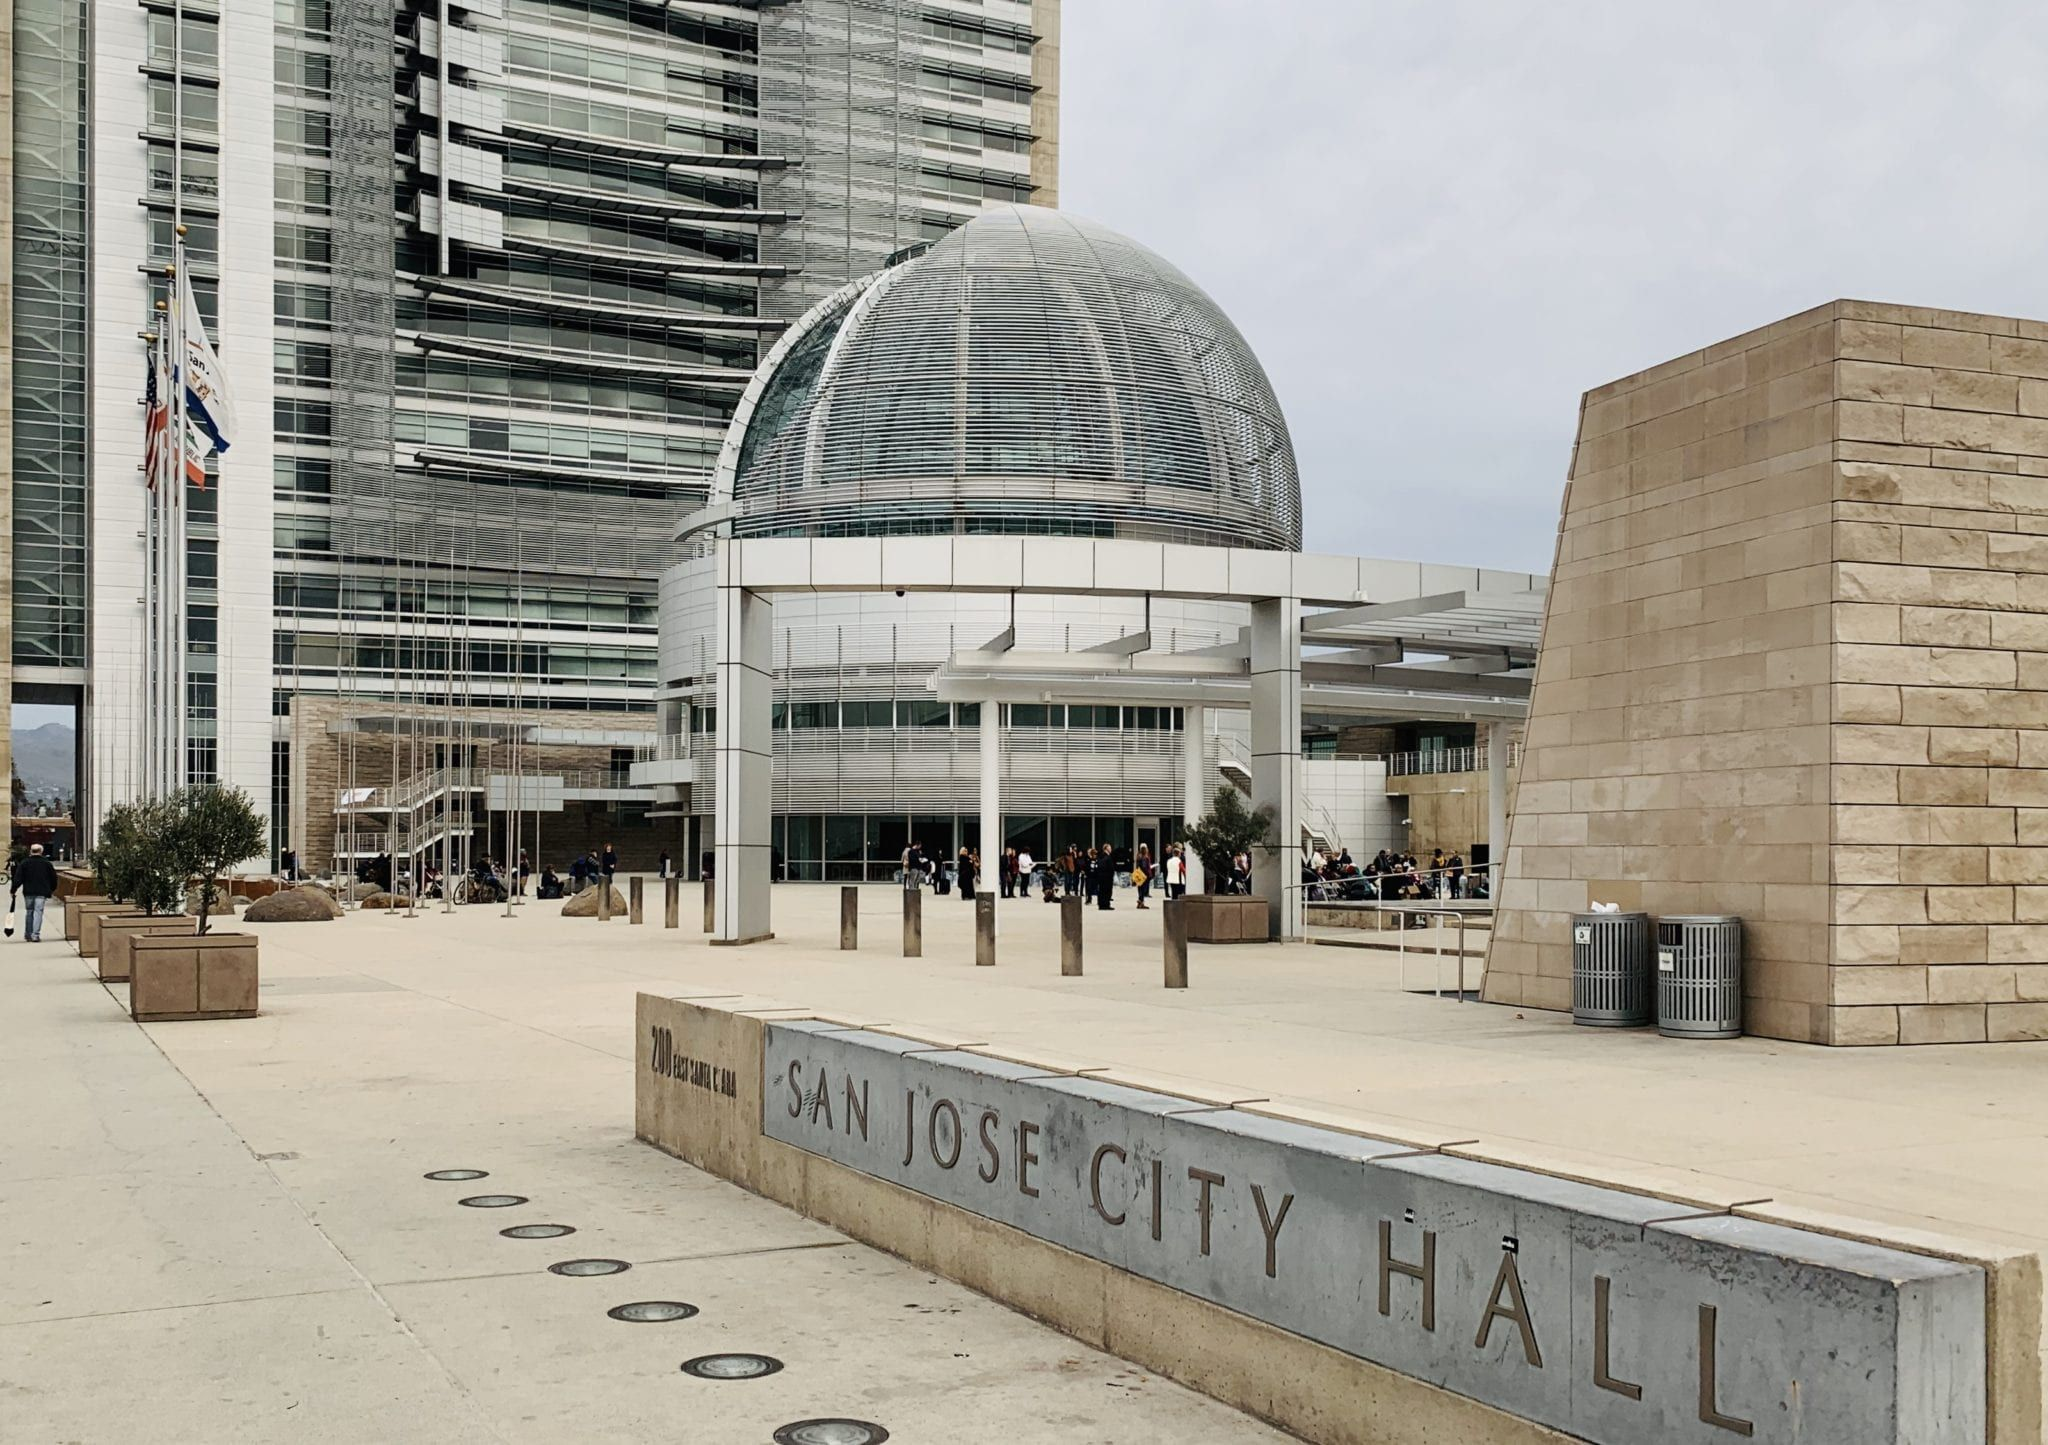 What are lobbyists doing at San Jose City Hall? That's a good question #sanjose #sanjoseca #siliconvalley #santaclaravalley #BayArea #SanFranciscoBayArea #sanjosecommunity #siliconvalleycommunity via www.SanJoseCommunity.com